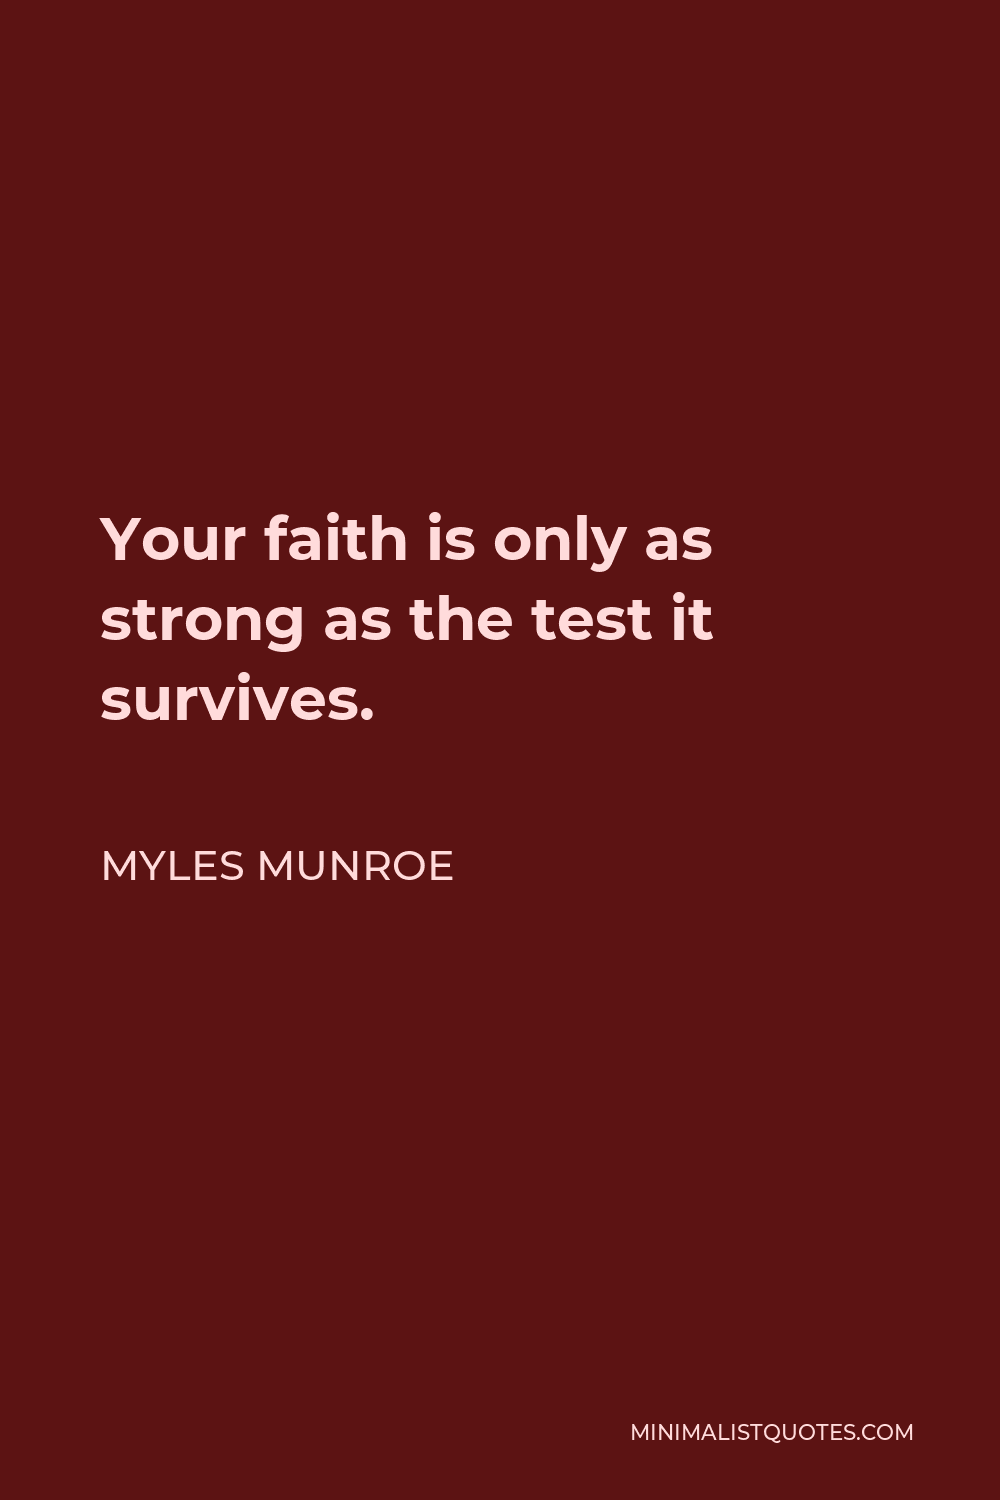 Myles Munroe Quote - Your faith is only as strong as the test it survives.